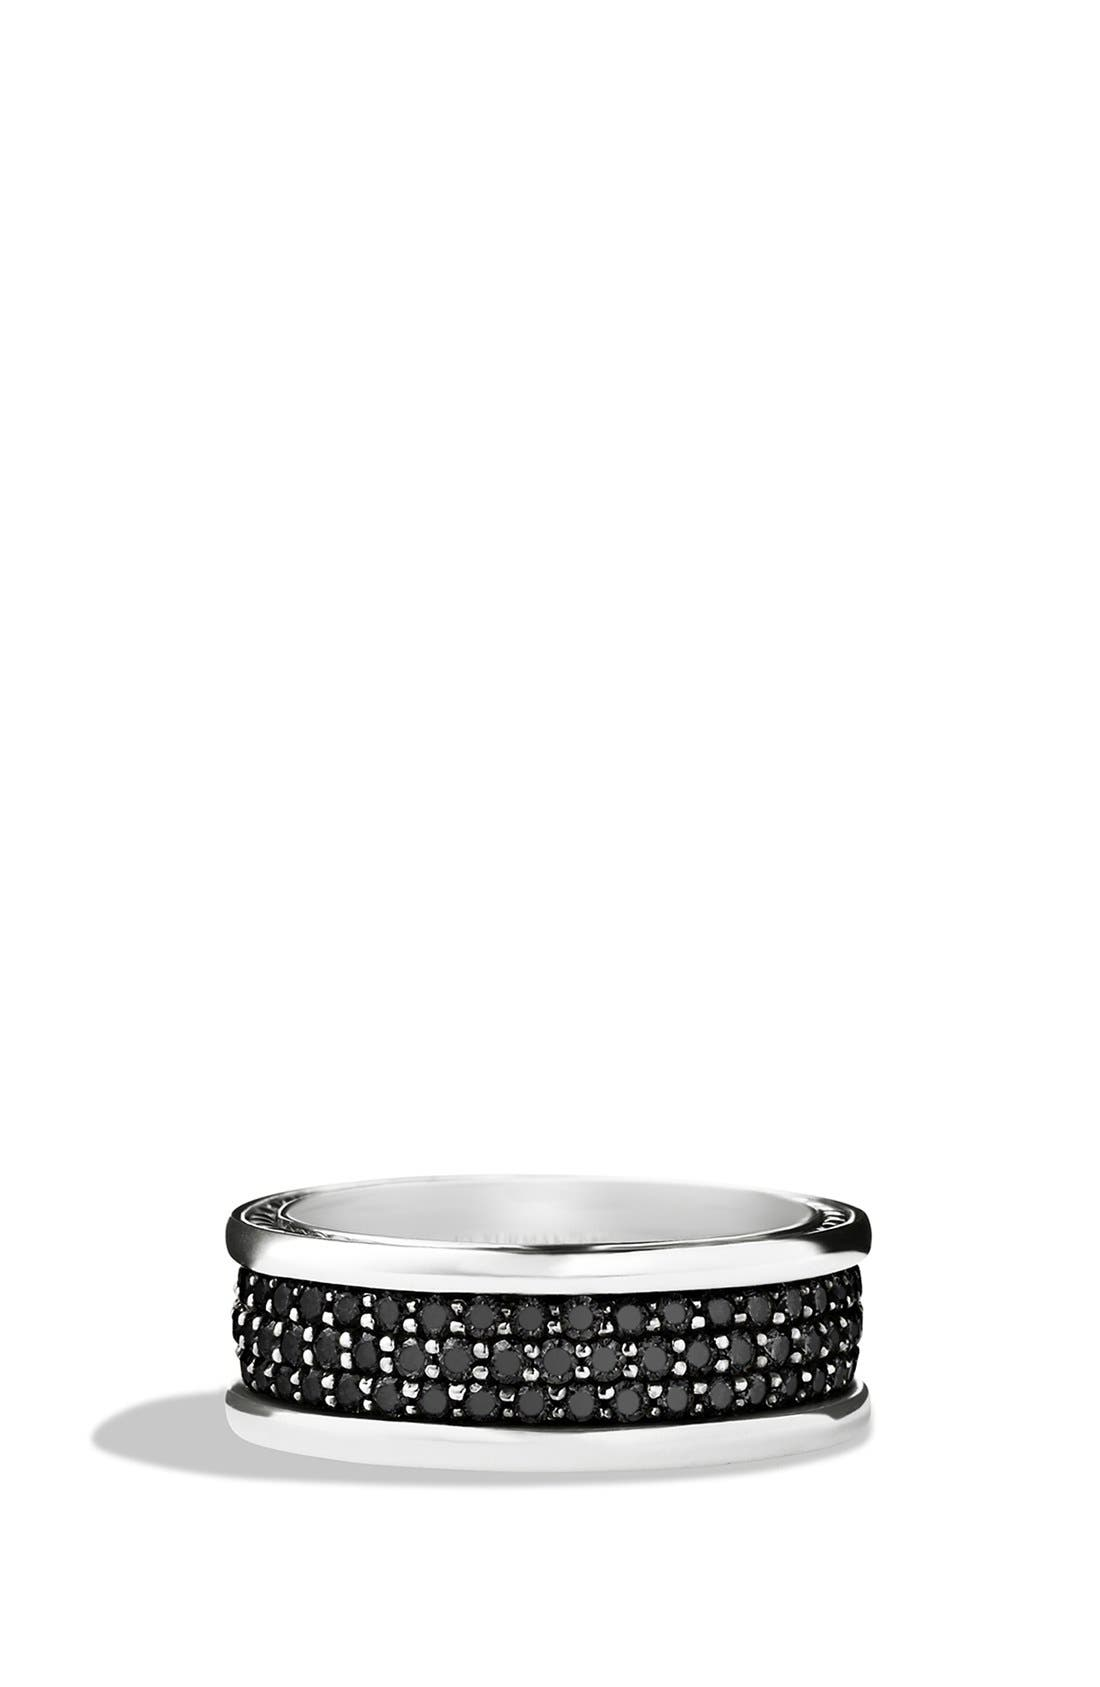 'Streamline' Band Ring with Black Diamonds,                         Main,                         color, Black Diamond